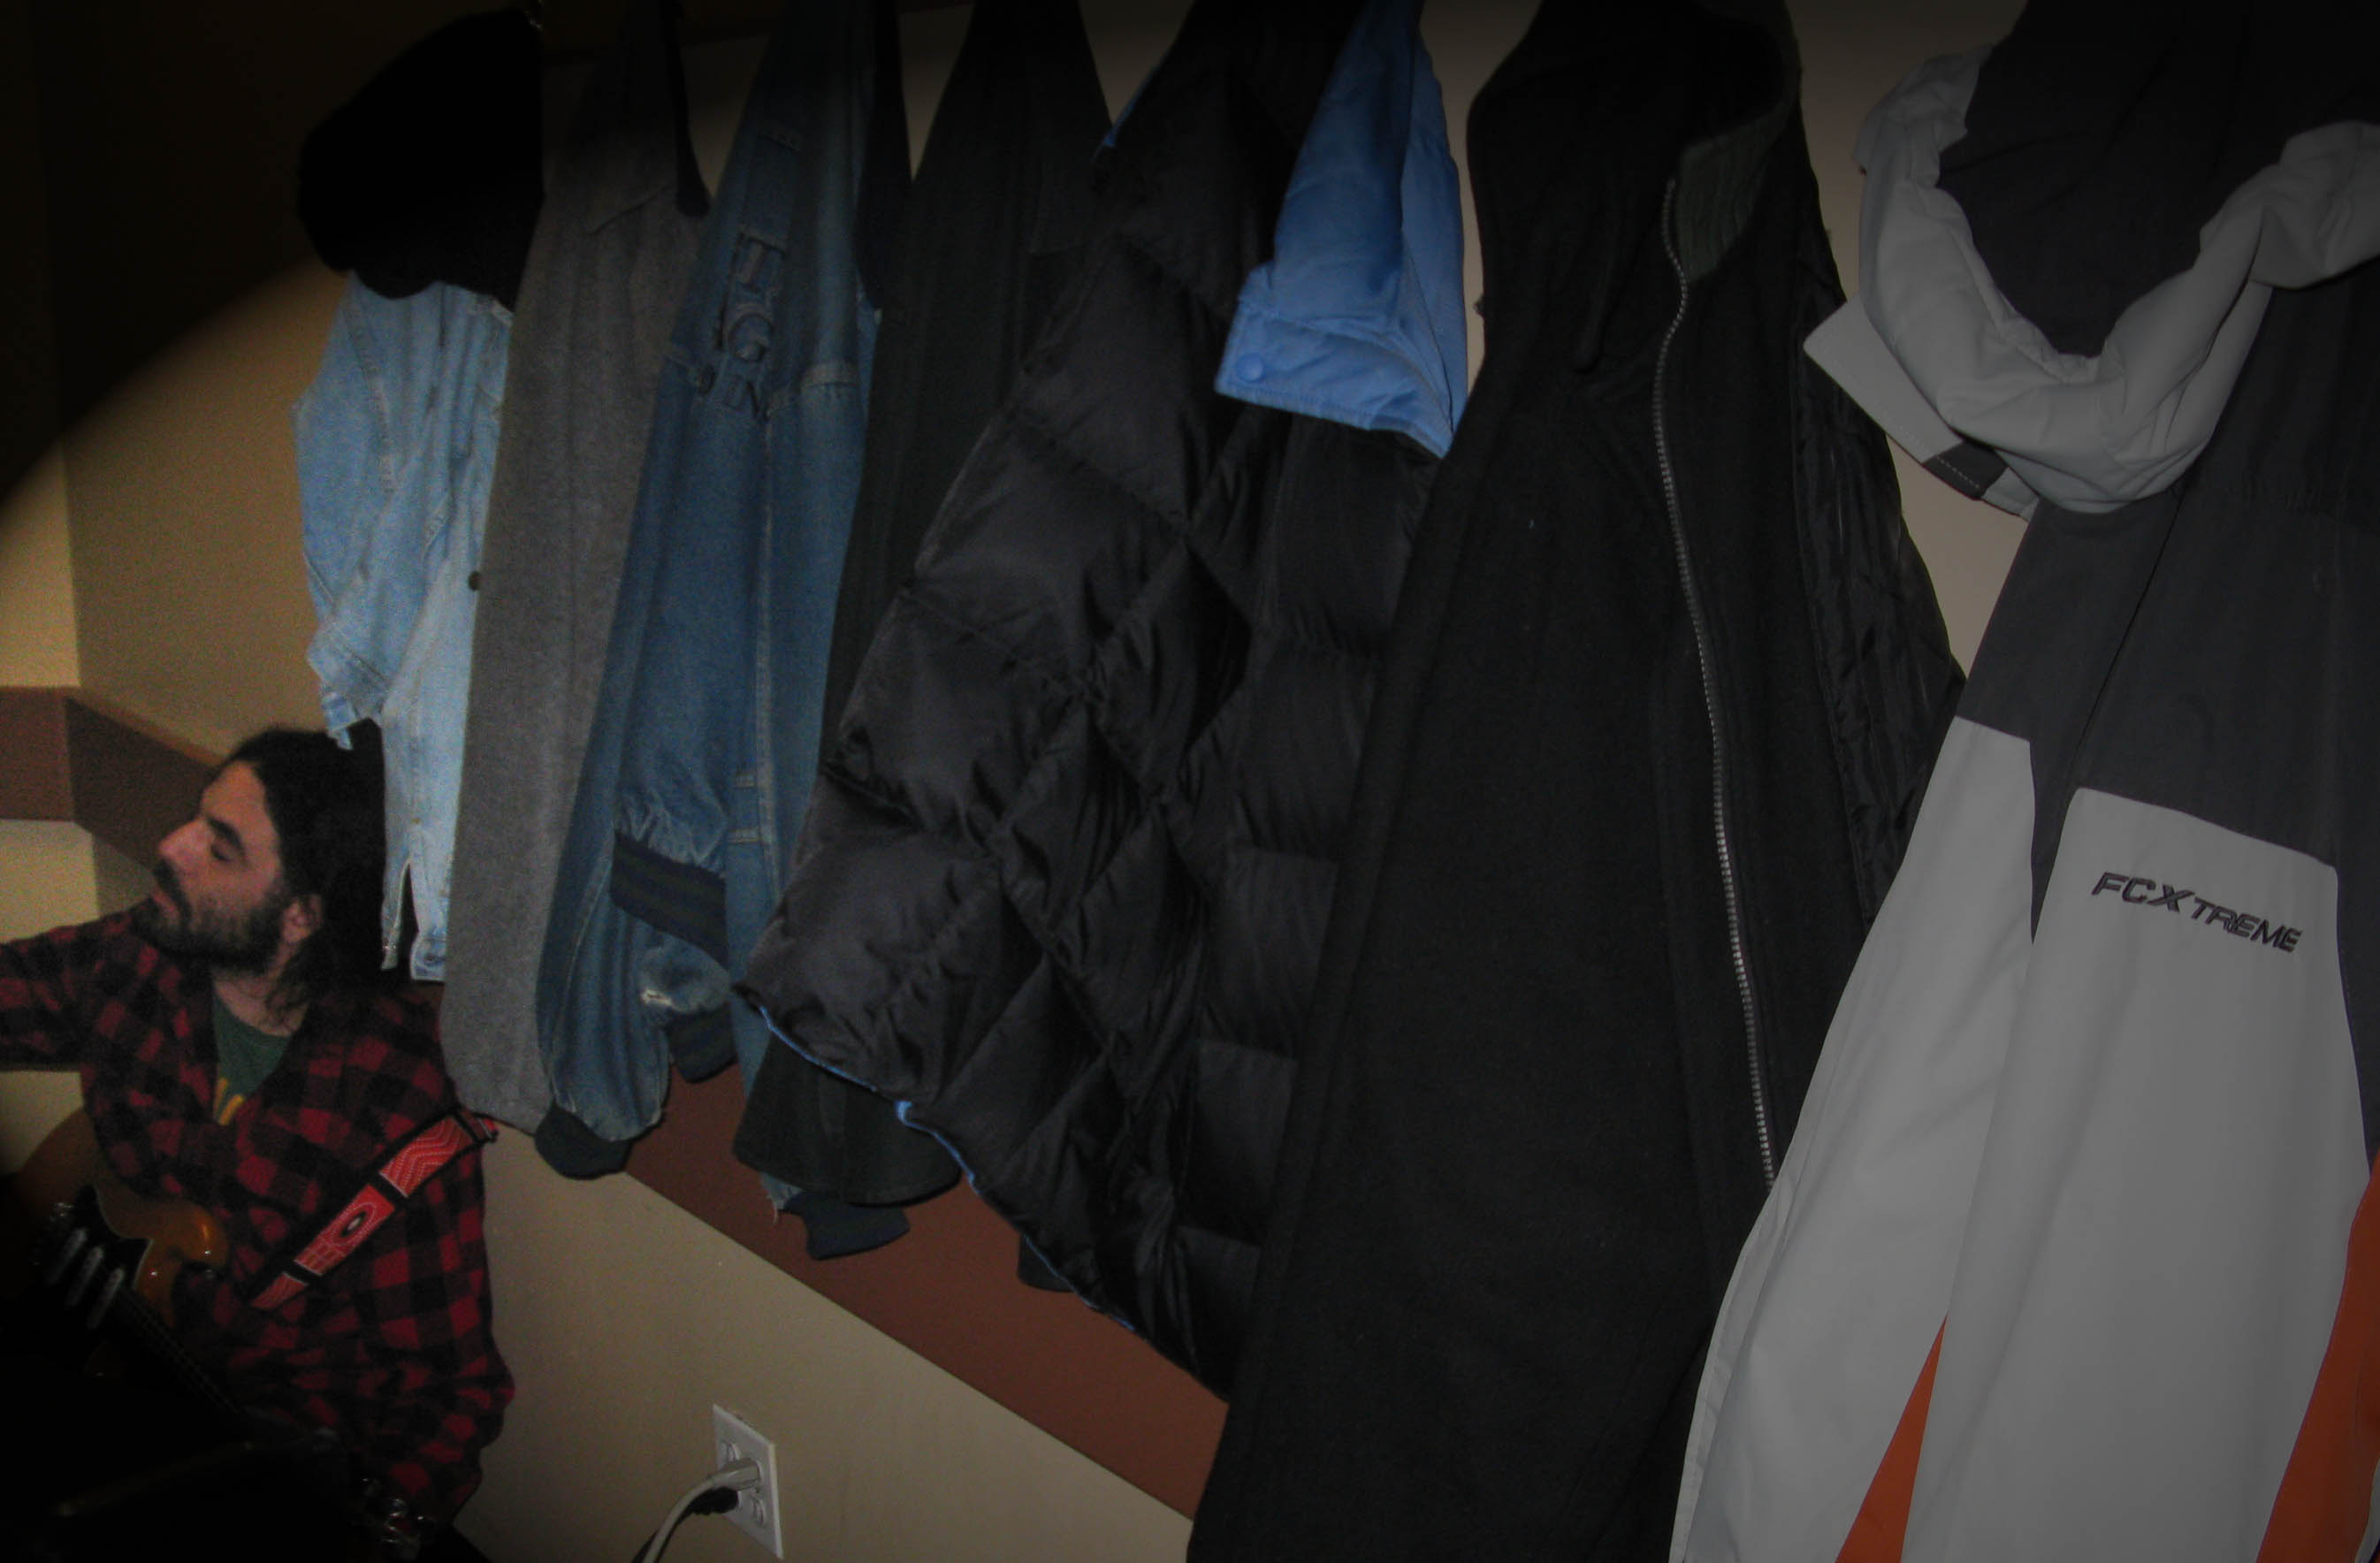 It is no longer summer as the coats on the wall inidcate